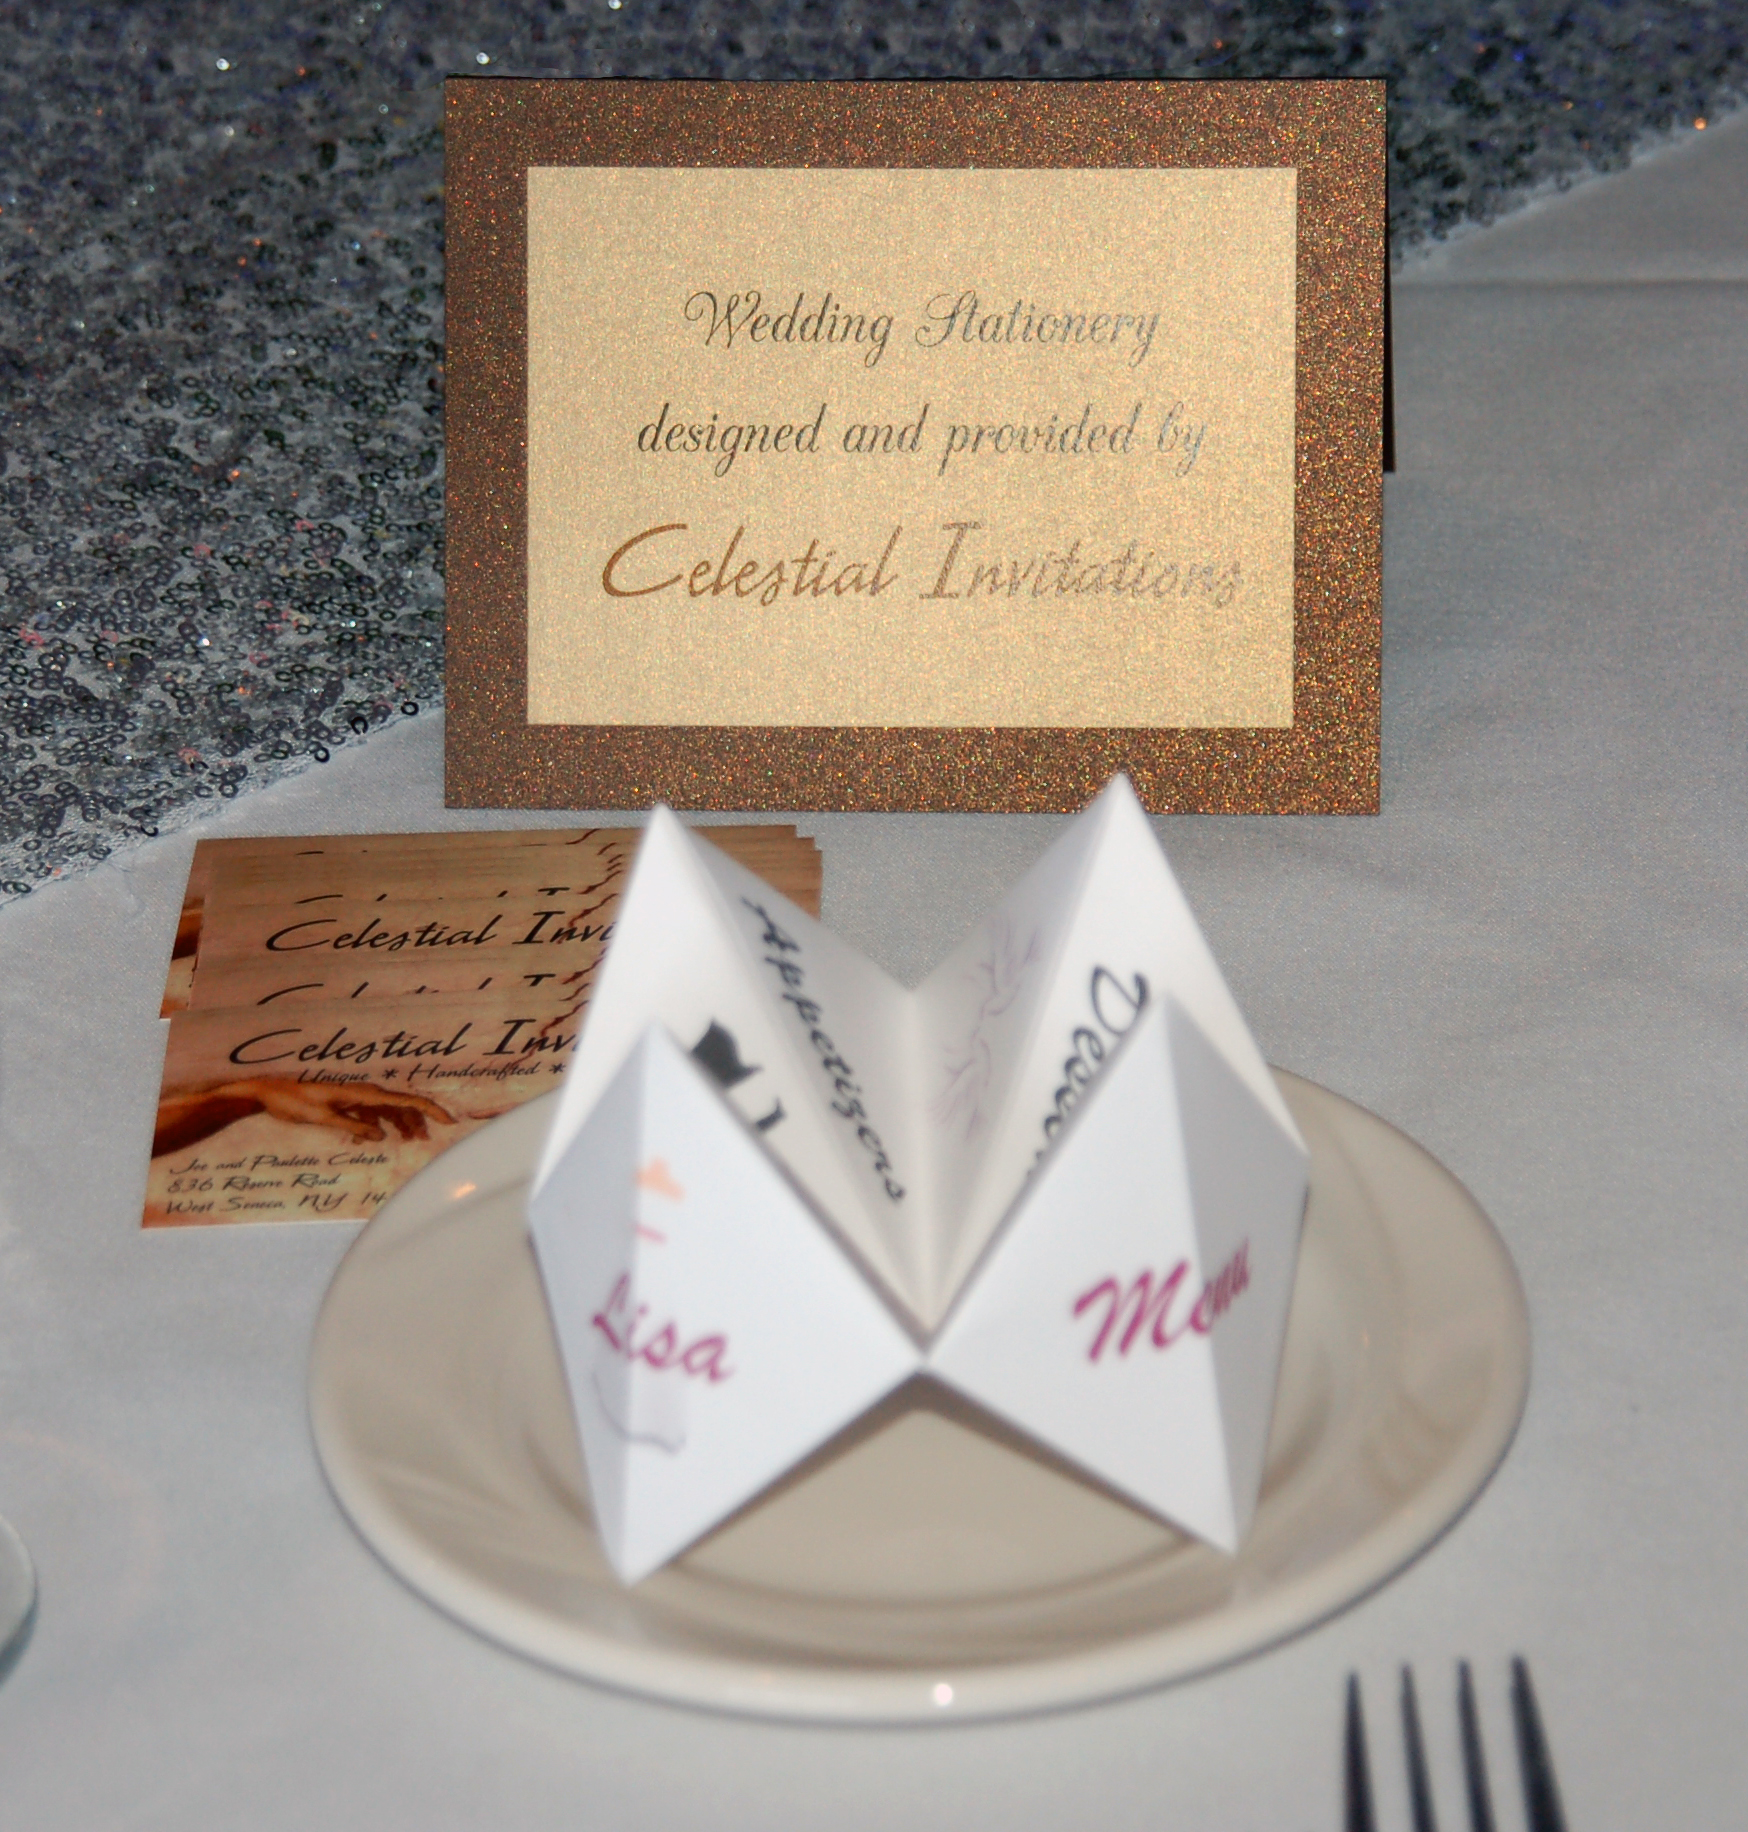 Cootie Catcher Menu